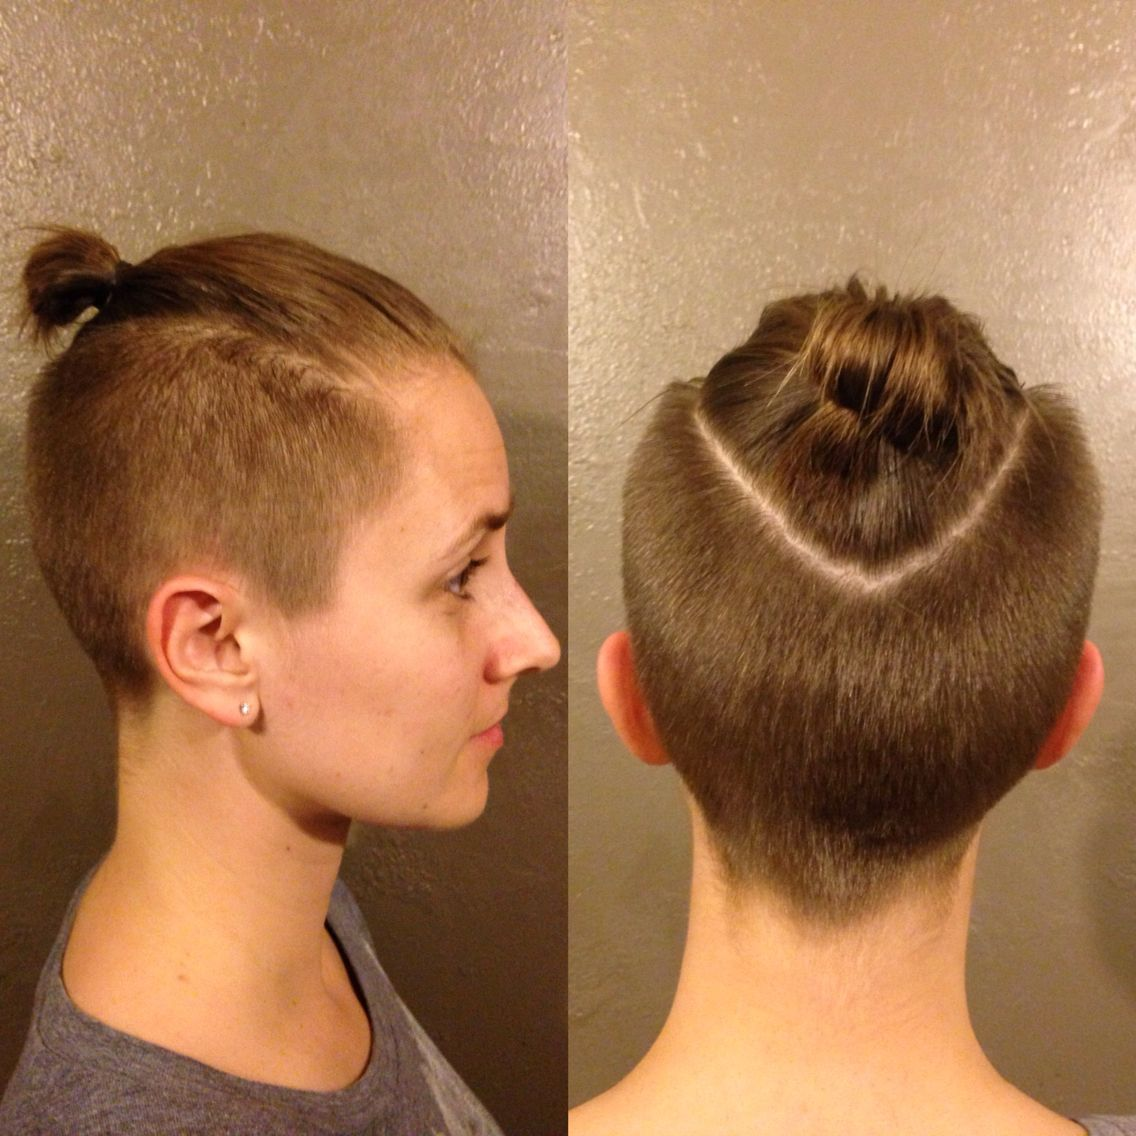 Top Knot / ponytail undercut | Hairstyles | Hair styles ...